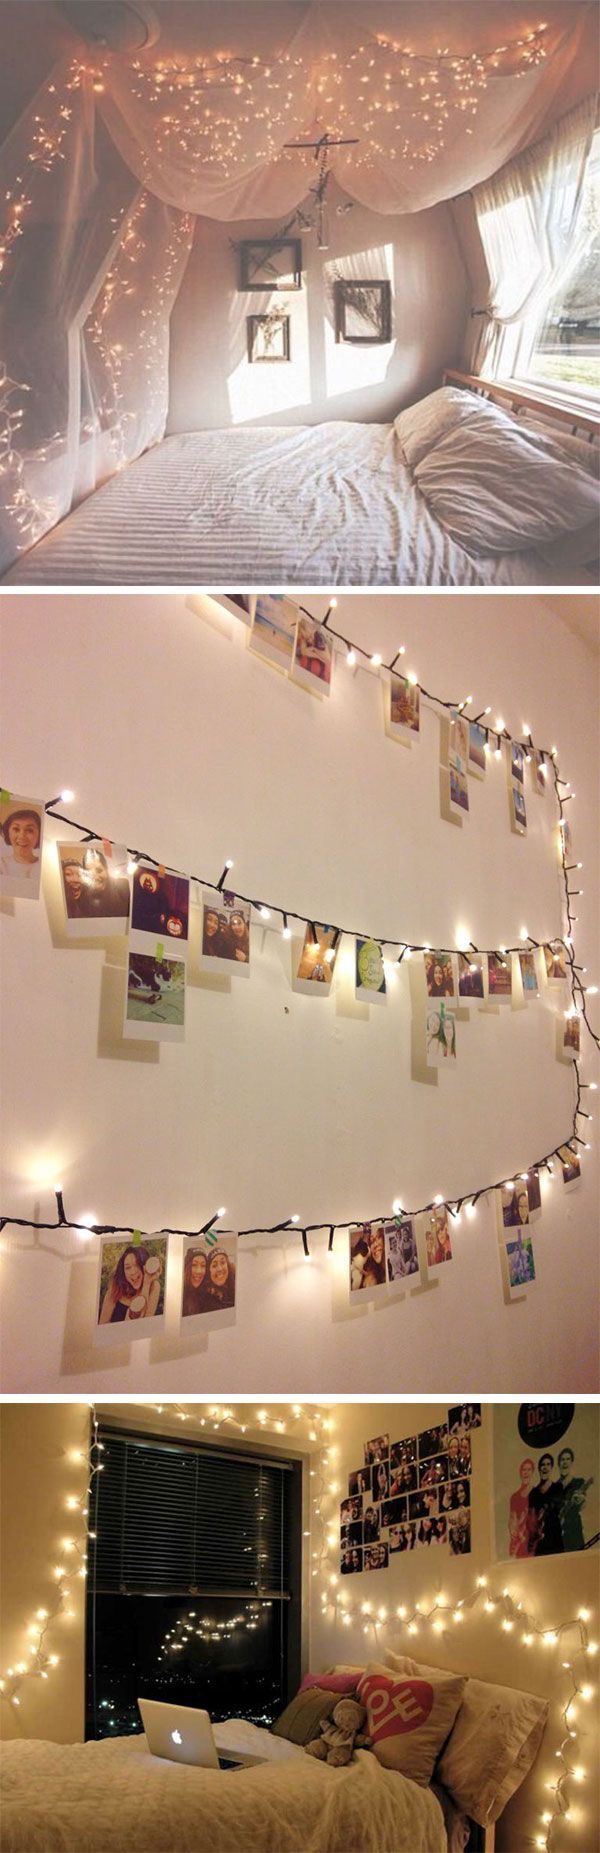 Bedroom ideas for girls tumblr - 13 Ways To Use Fairy Lights To Make Your Home Look Magical Room Decor Diy Lightsdiy Home Decor For Teens Tumblr